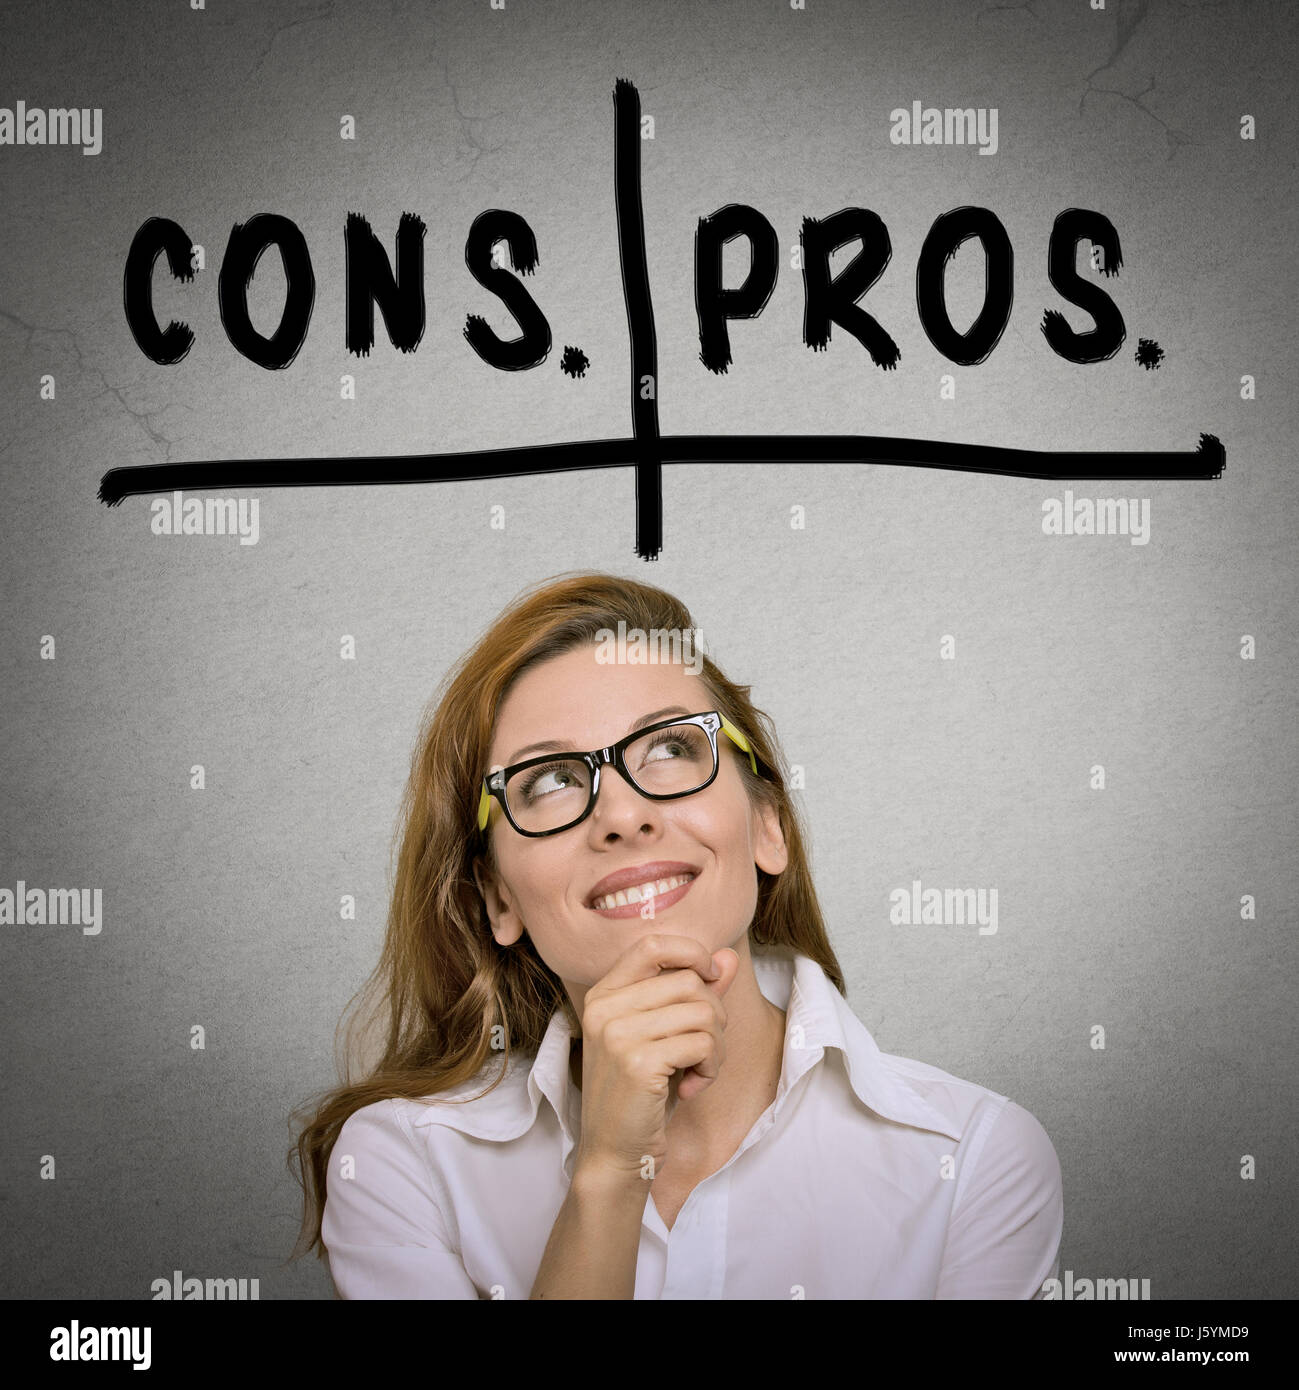 pros and cons, for and against argument concept. Thinking young business woman with glasses looking up isolated - Stock Image